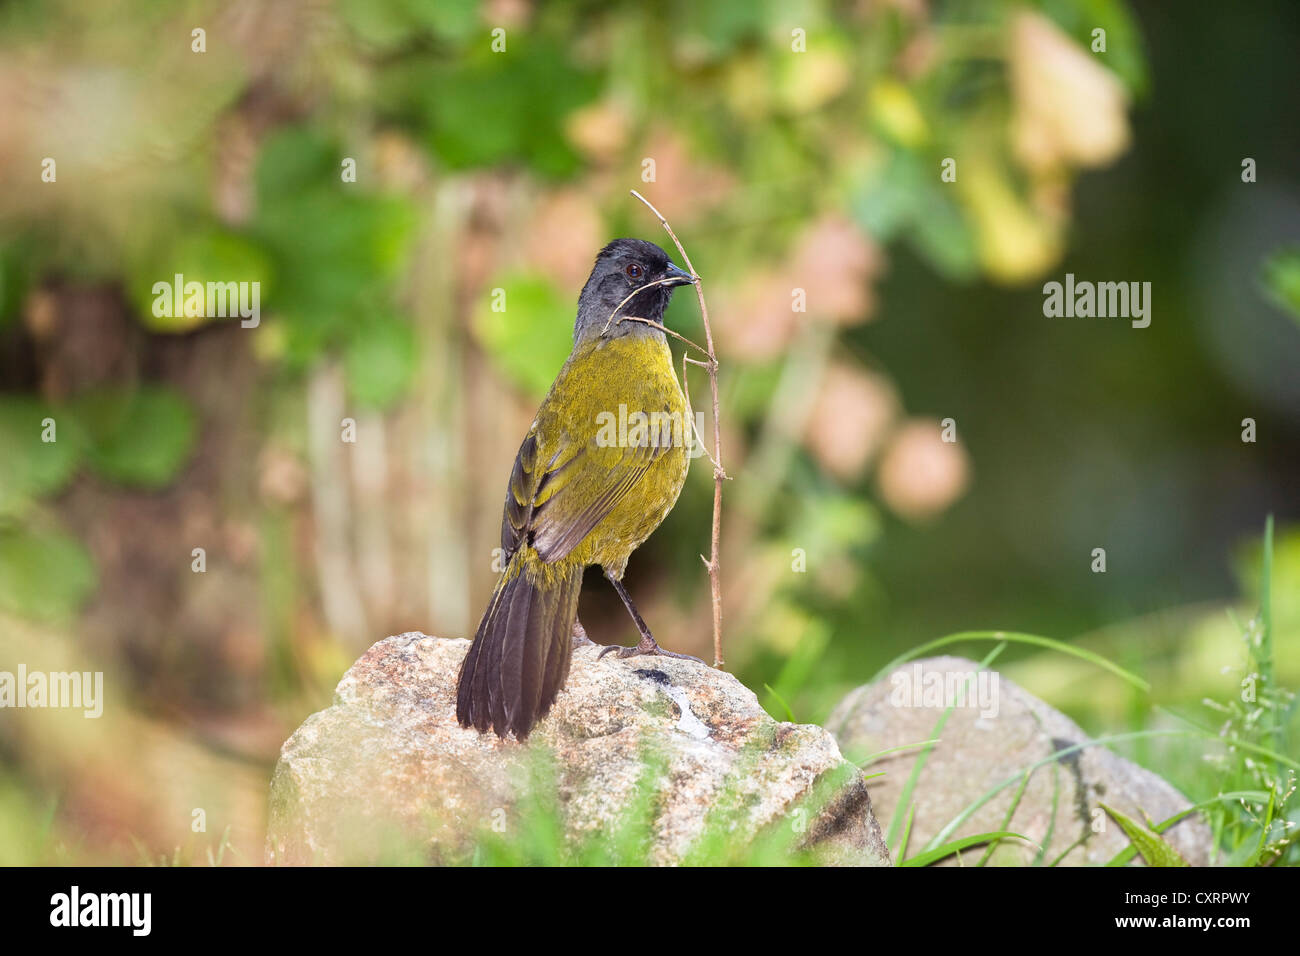 Large-footed Finch (Pezopetes capitalis) with nisting material, Cerro de la Muerte, Costa Rica, Central America - Stock Image